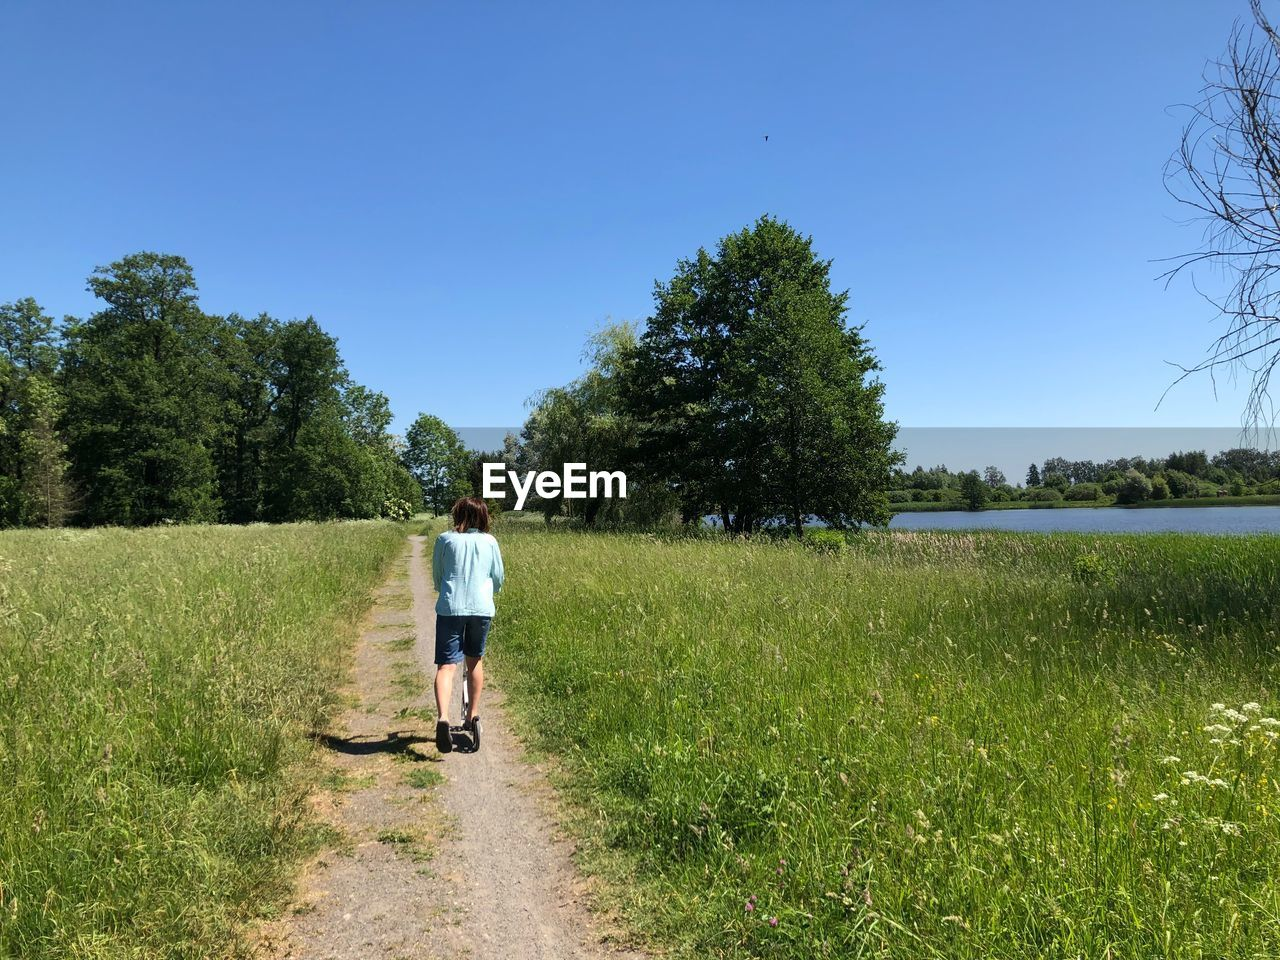 plant, grass, full length, sky, rear view, tree, walking, nature, field, day, real people, one person, lifestyles, growth, leisure activity, clear sky, men, casual clothing, land, green color, outdoors